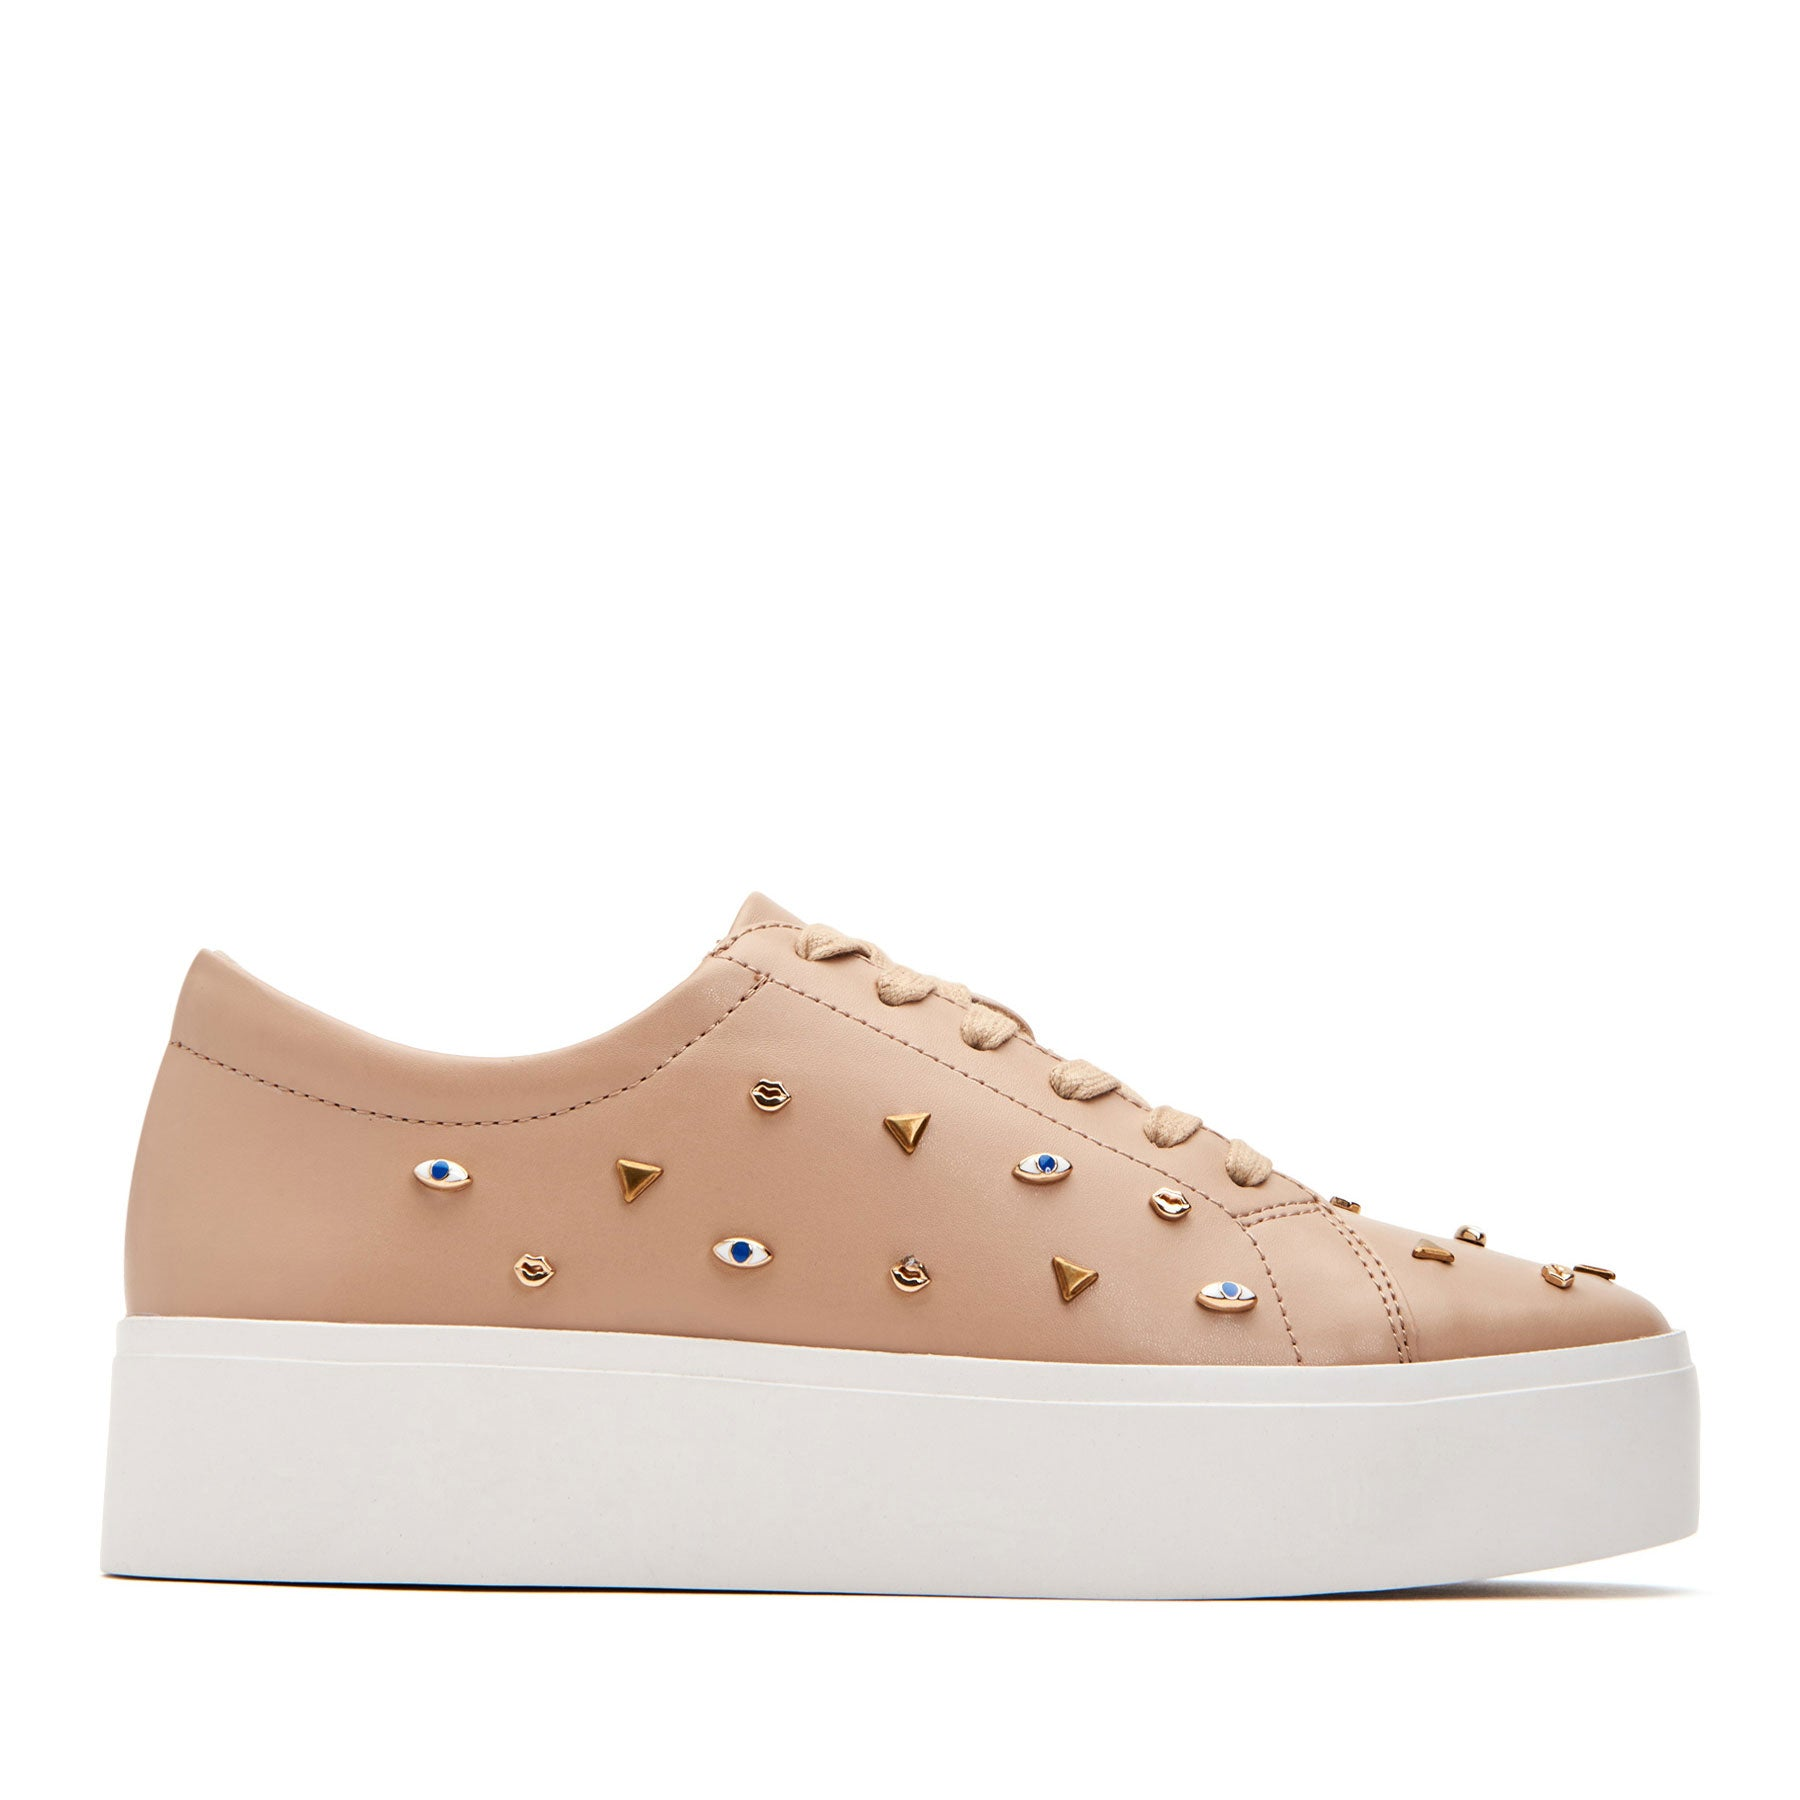 katy perry platform sneaker nappa leather in nude size 8.5   the dylan